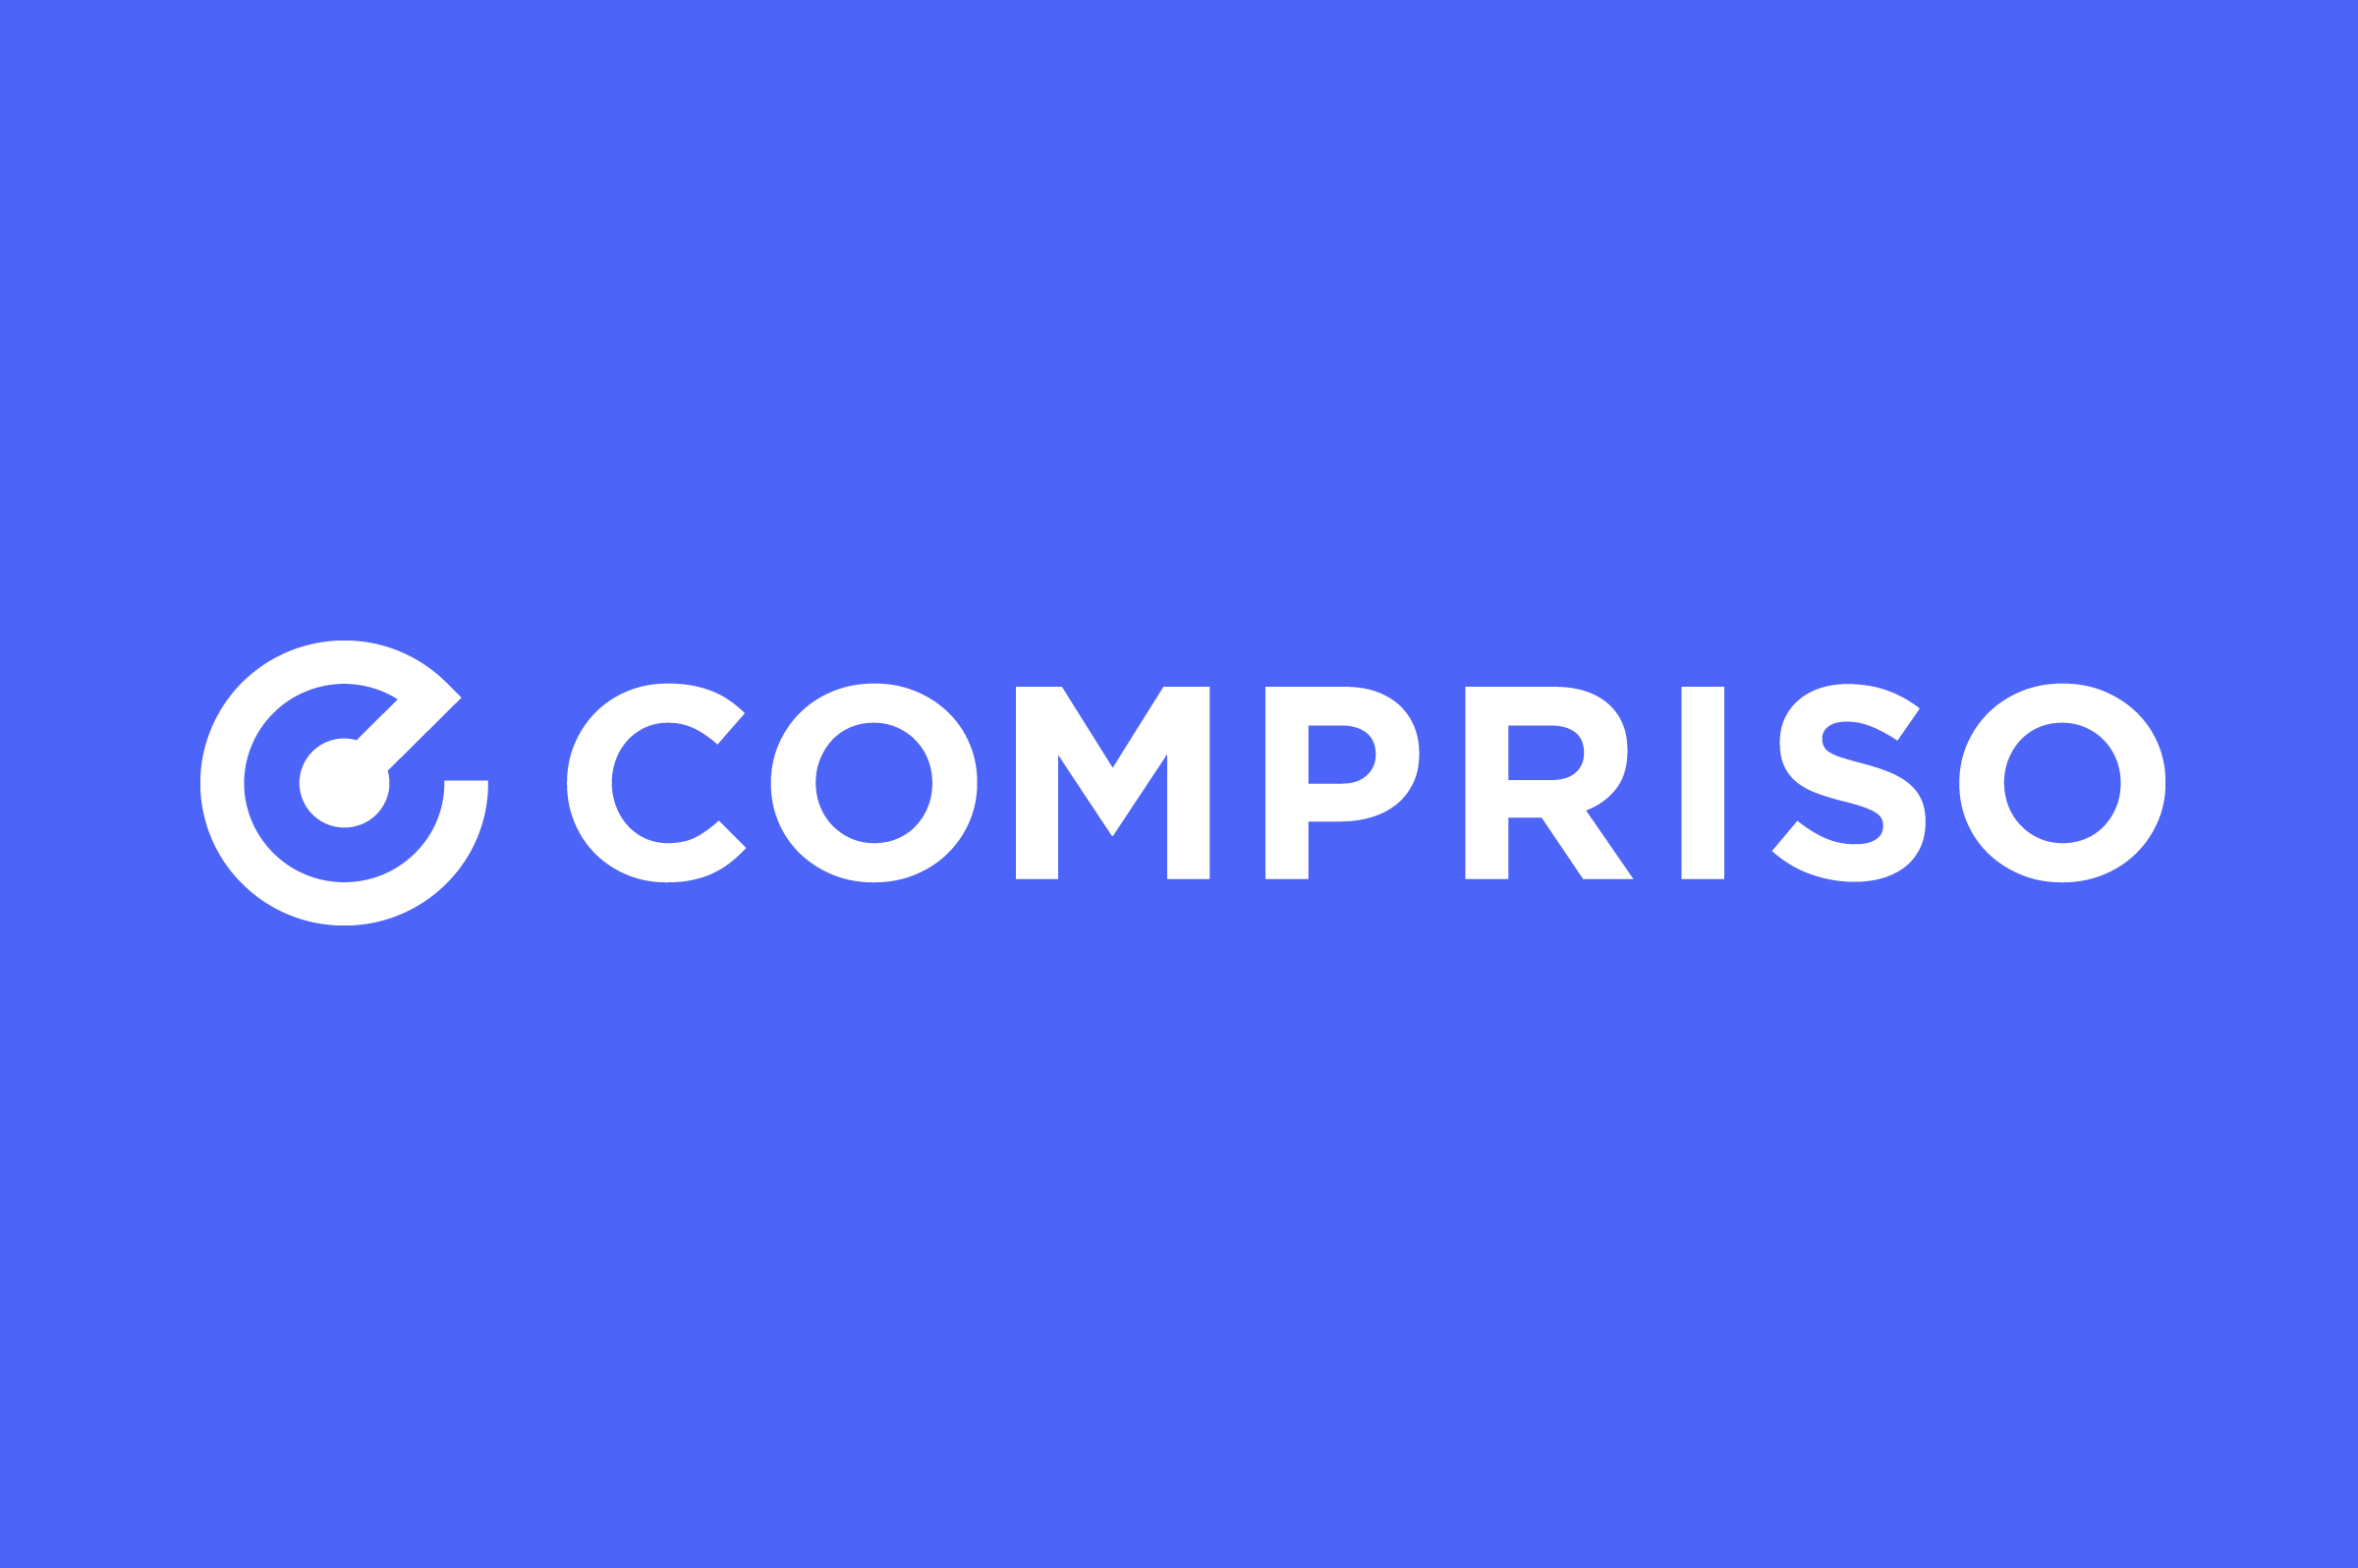 Welcome to the new Compriso.com